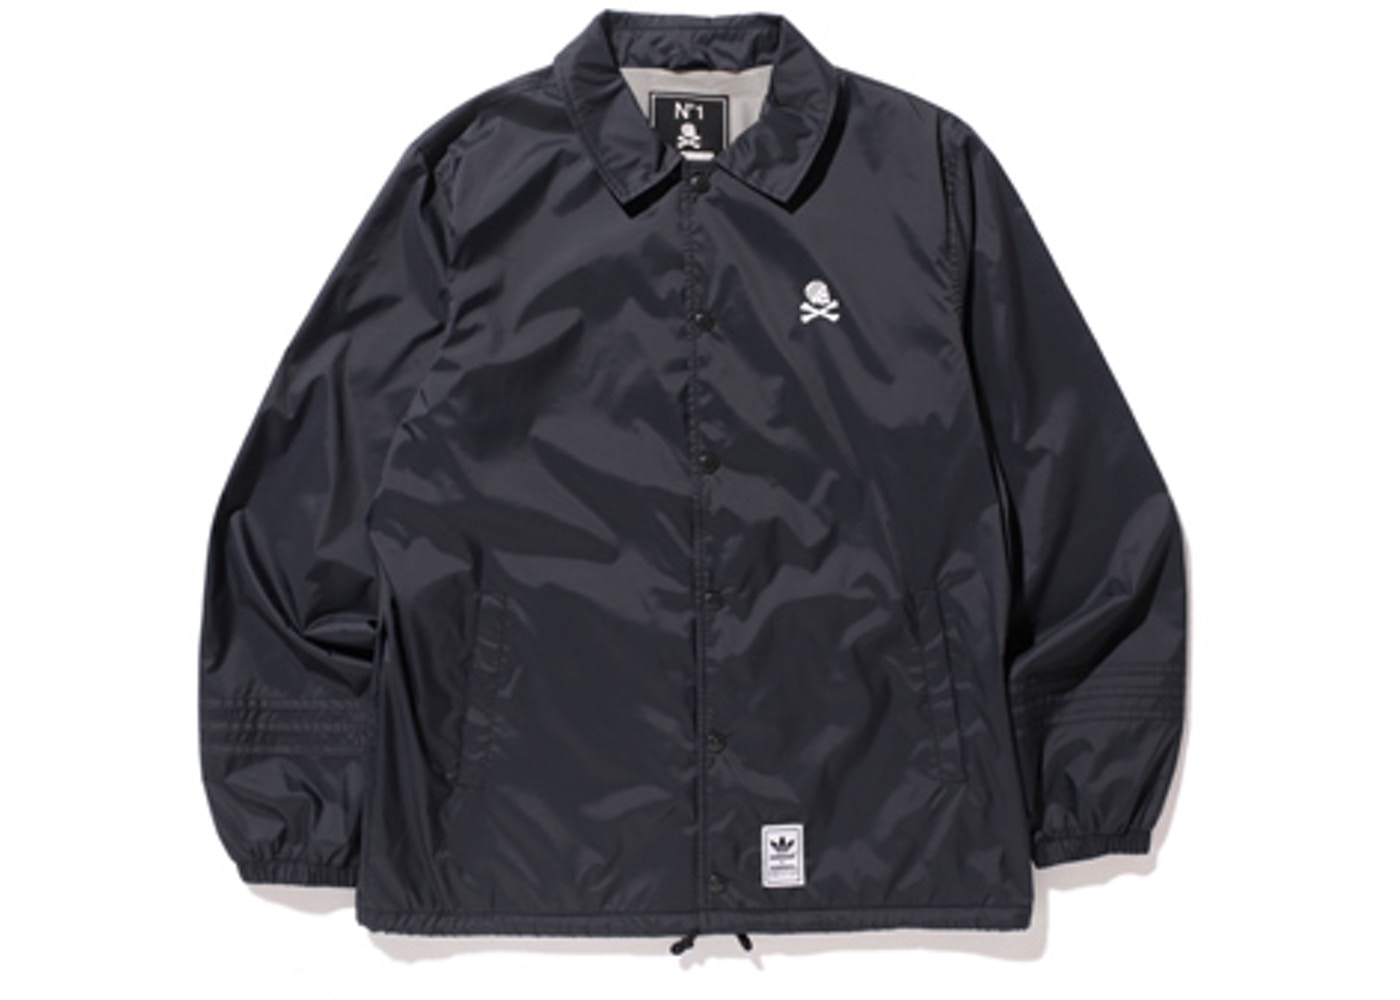 adidas Neighborhood Coach Jacket Black FW15